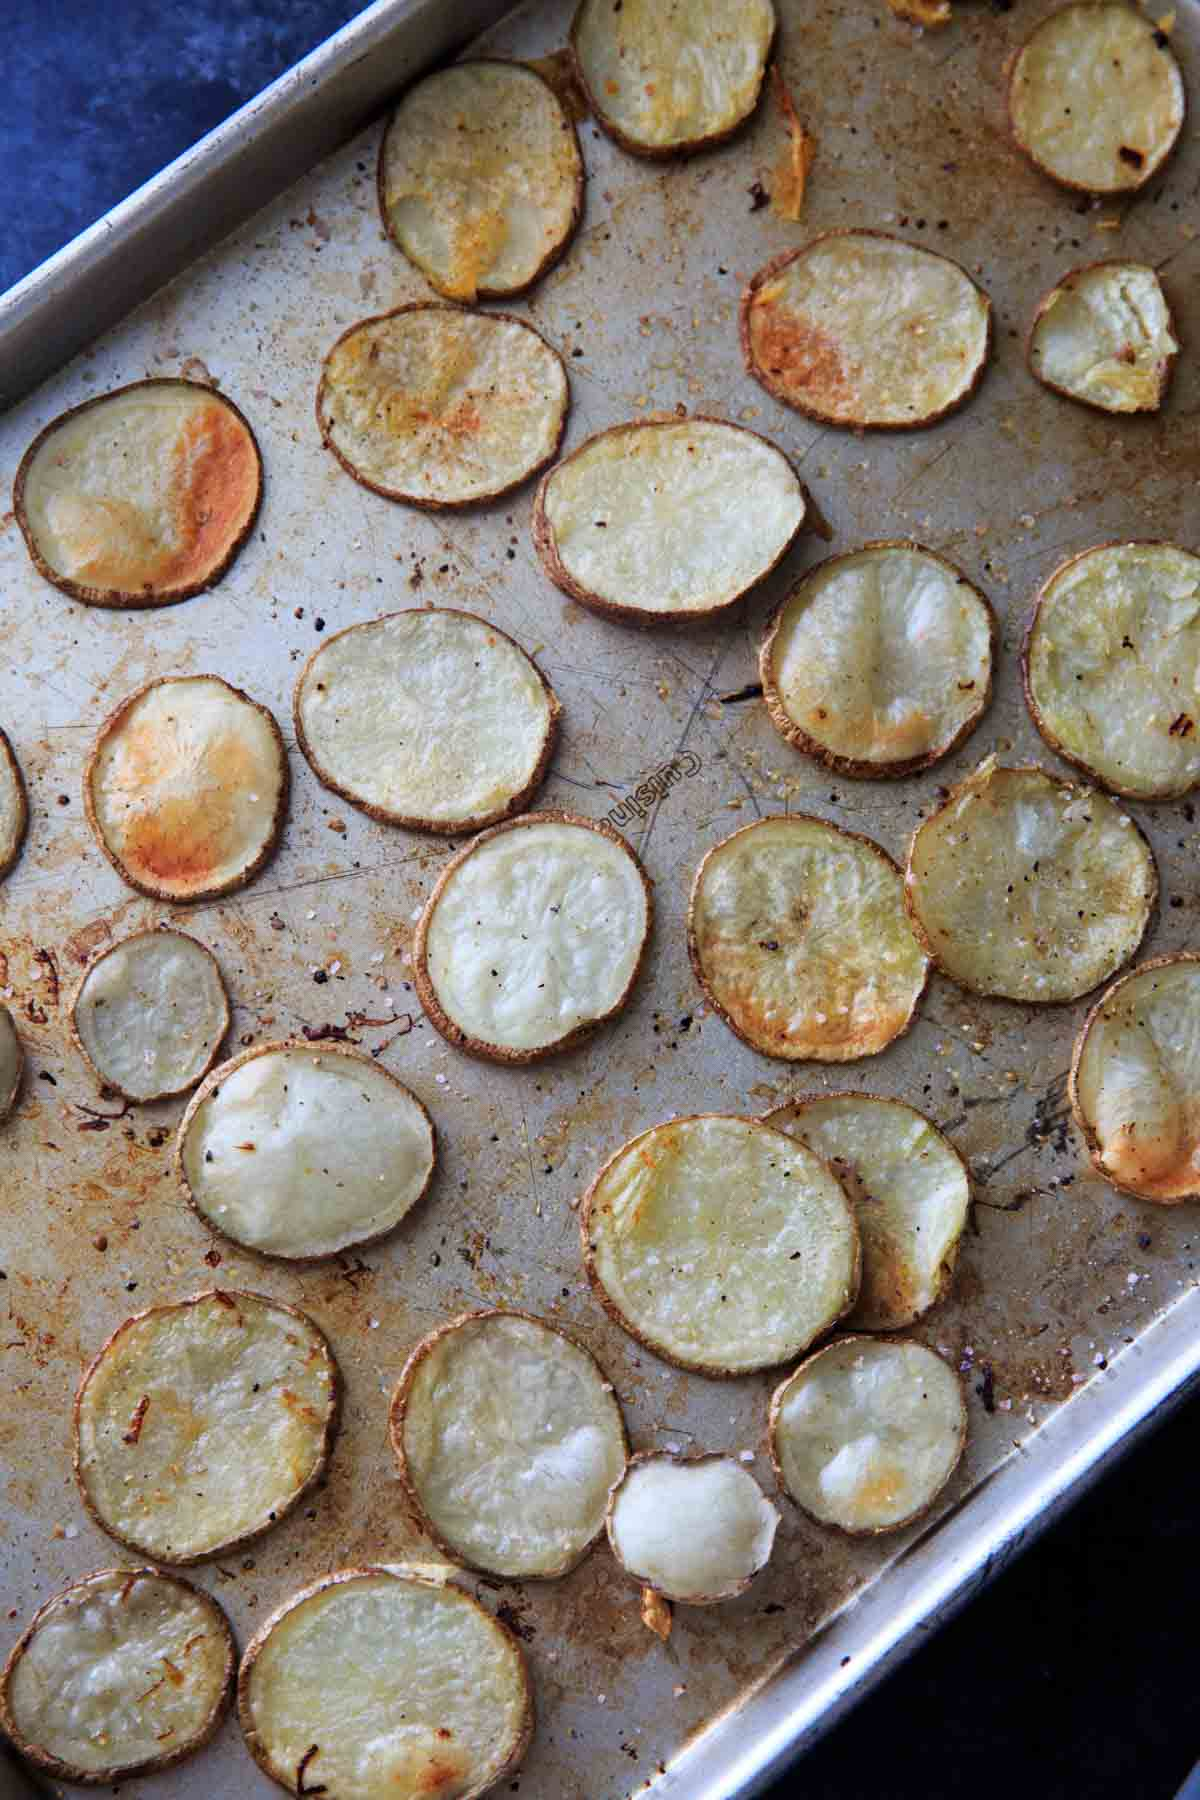 Irish Pub Potato Nachos - baking the sliced potatoes